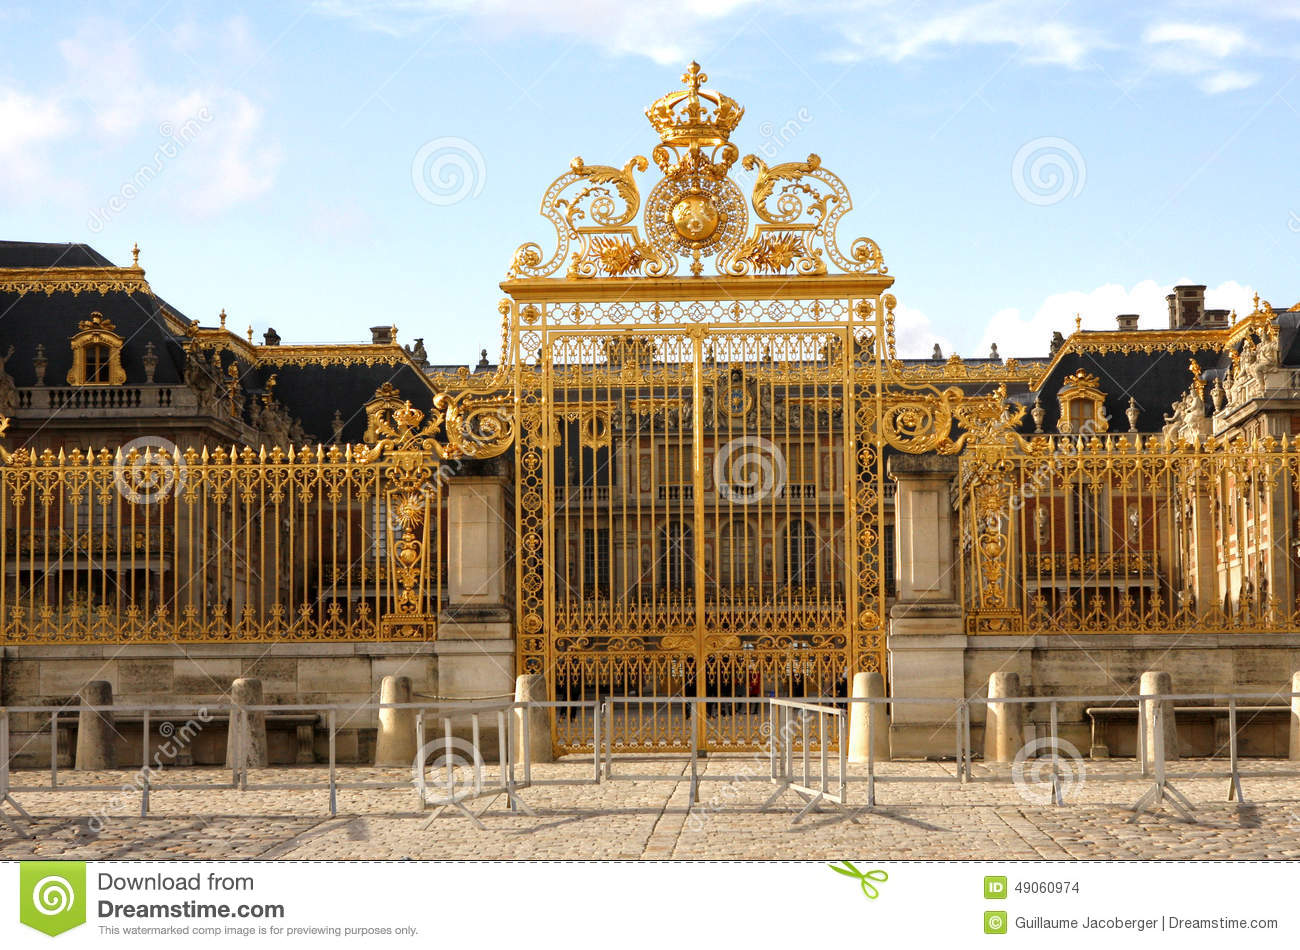 louis xiv of france and palace King louis xiv of french, the sun king, is known for its exorbitant court and spectacular events at his palace of versailles he was the first of the bourbon kings living at versailles.